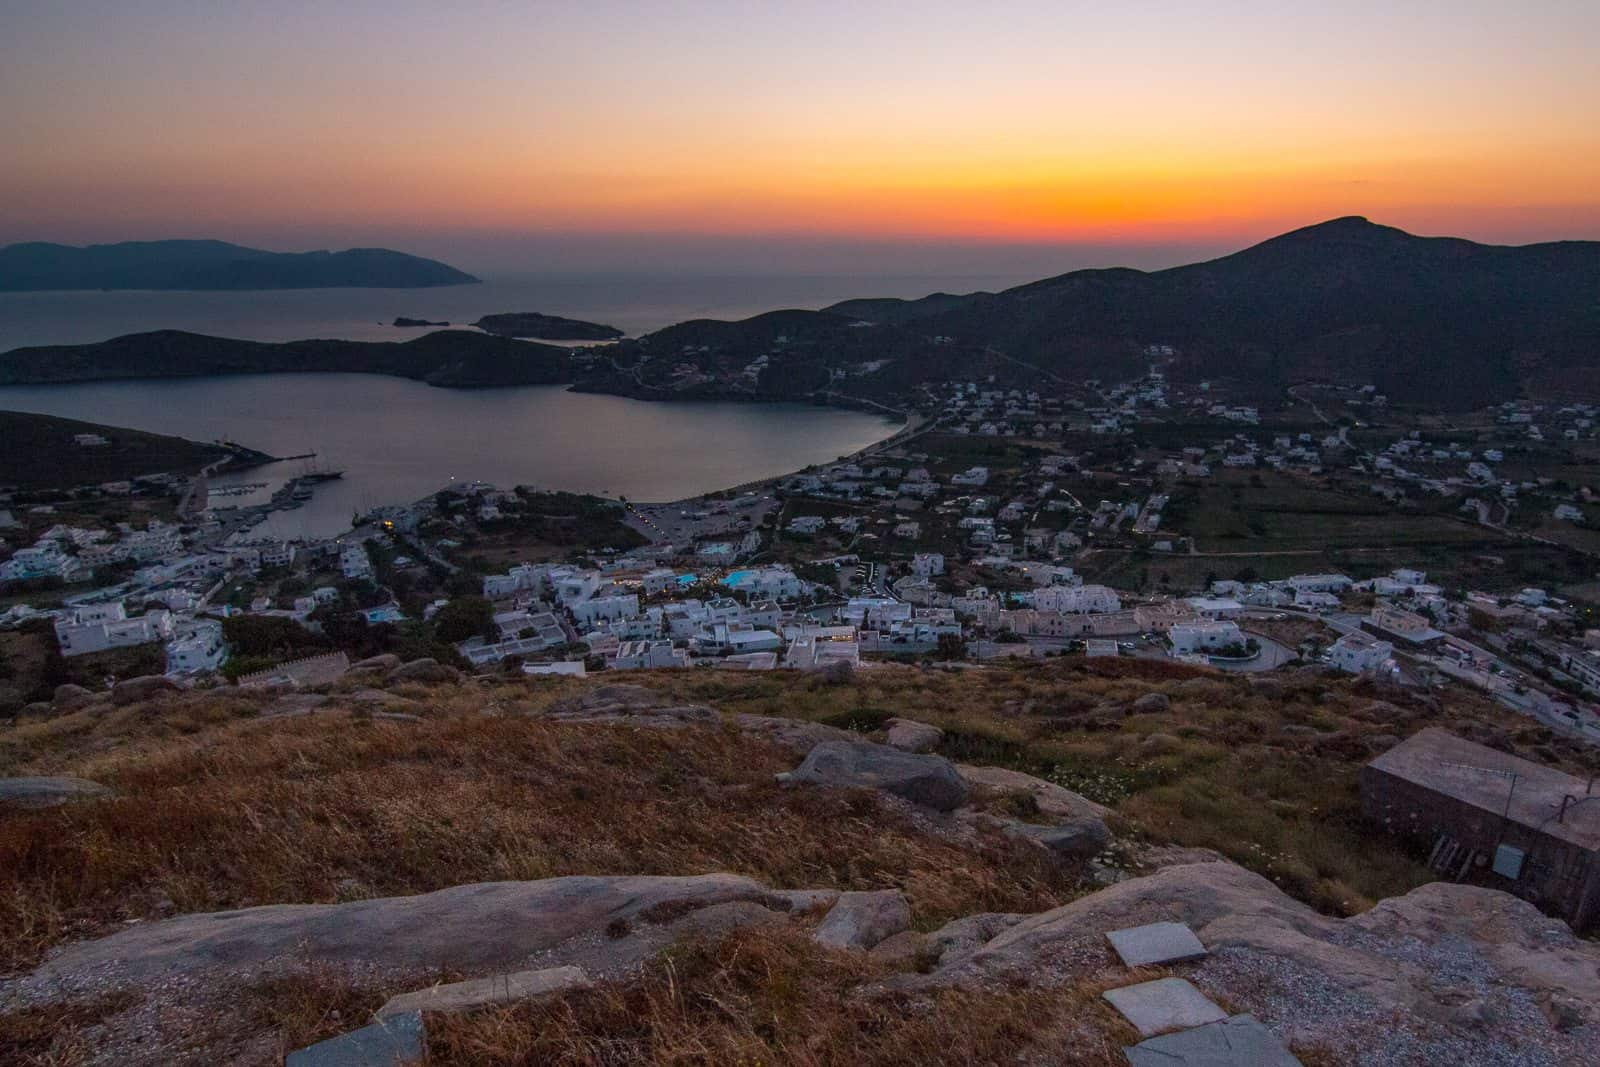 Sunset on the Island of Ios, Pictures of Greece